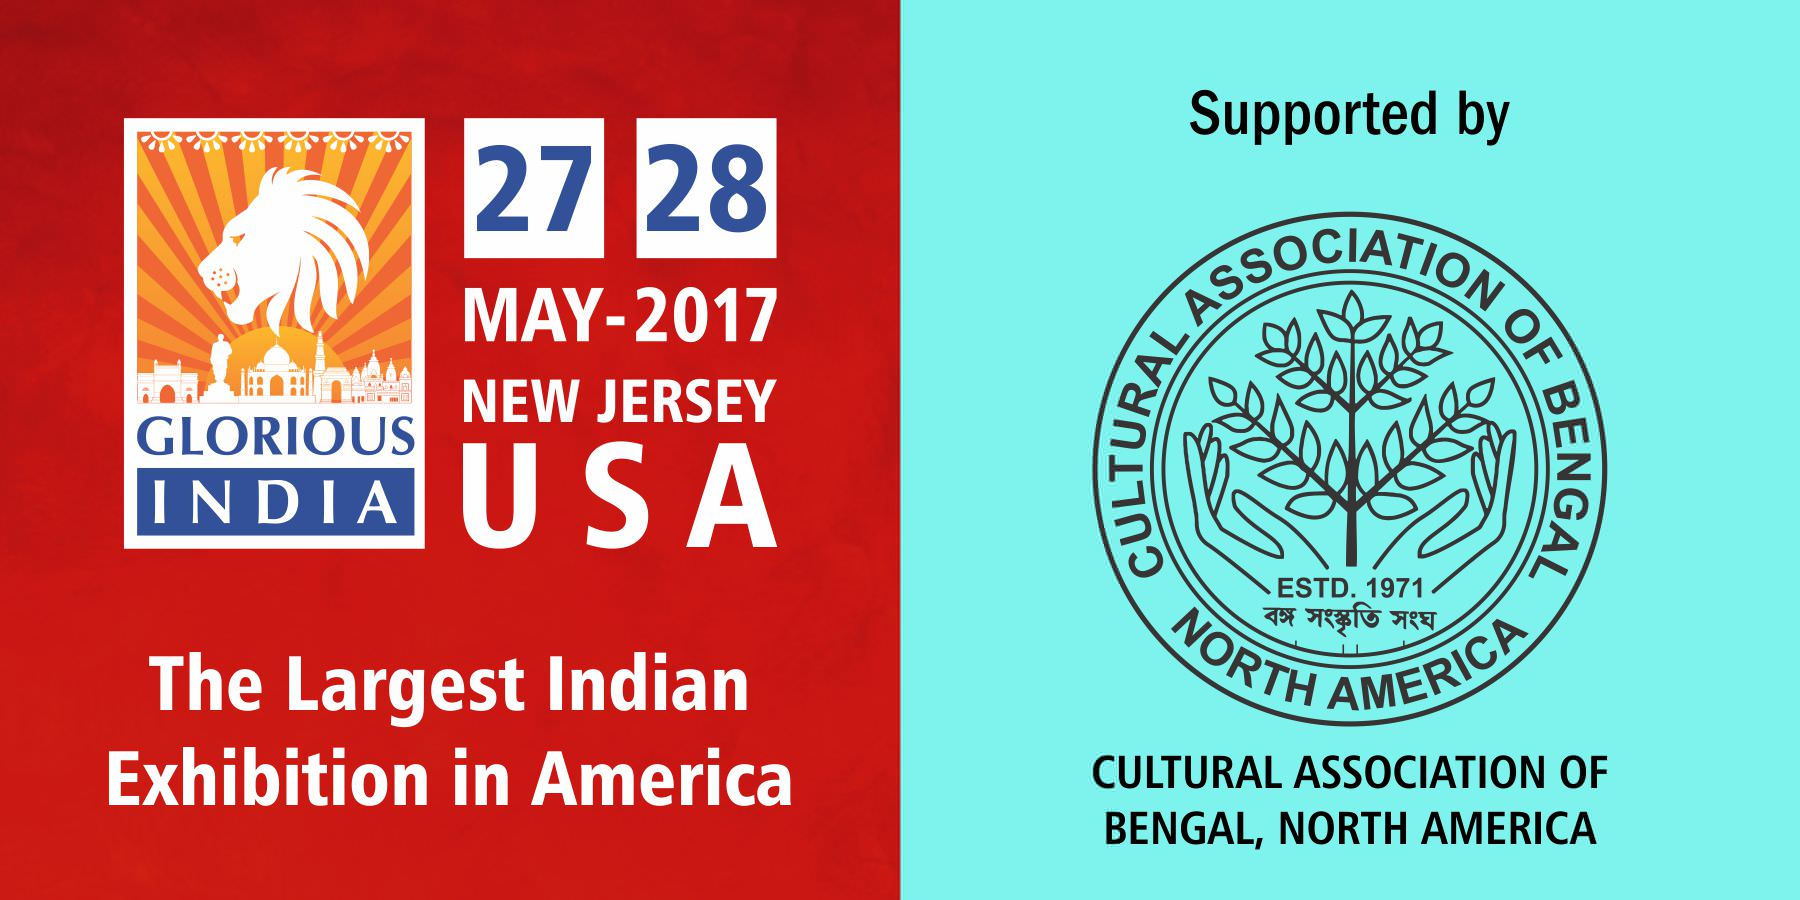 Glorious India Expo - Cultural Association of Bengal, North America